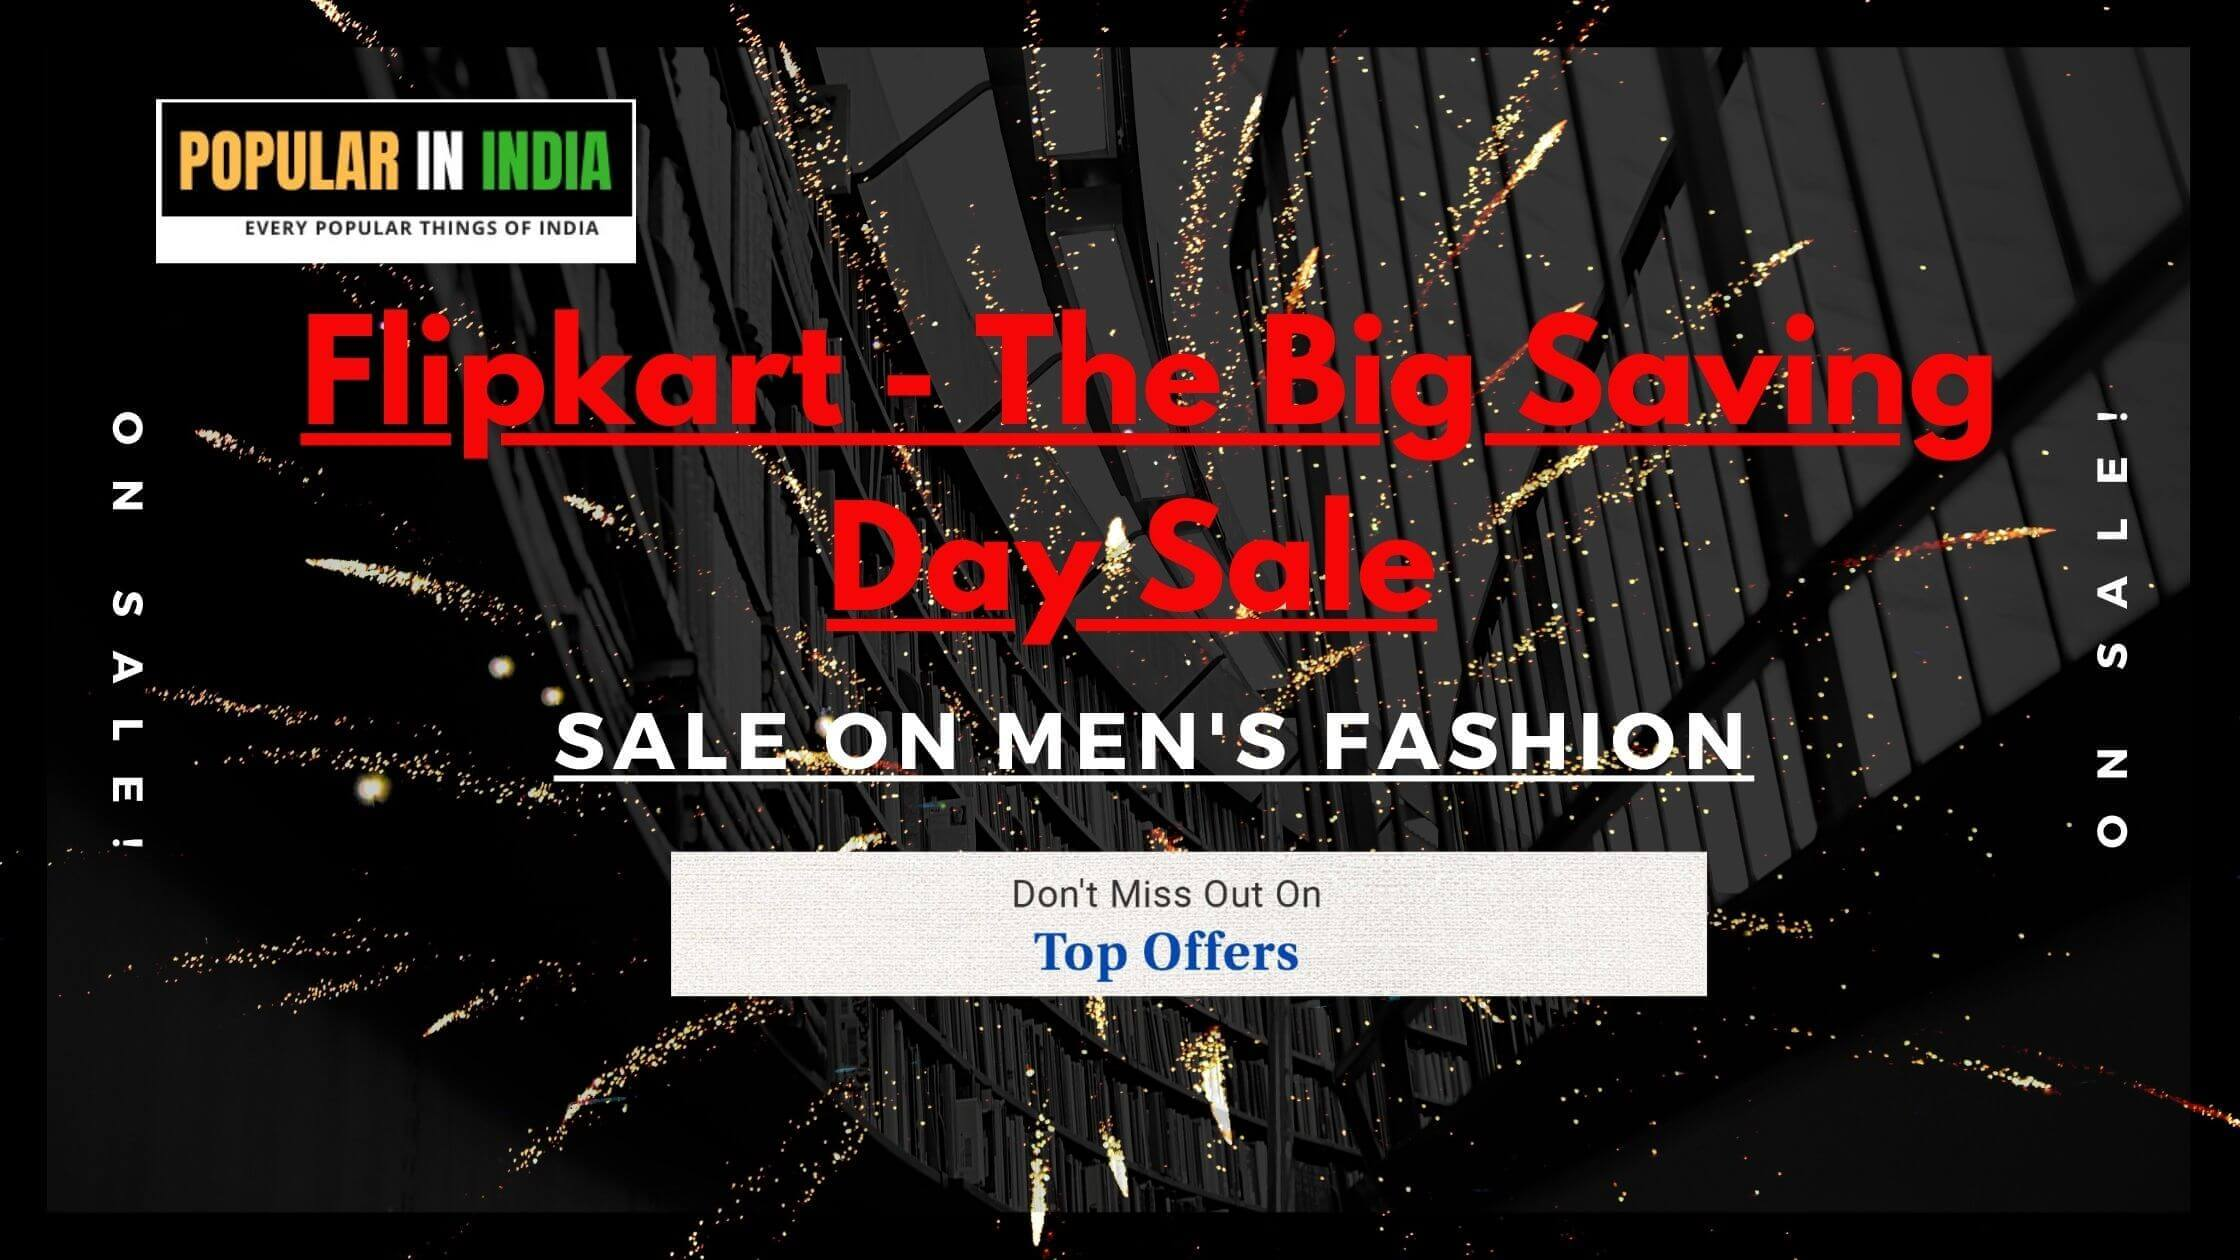 Flipkart Big Saving Day Sale discounts and Offers on Men Fashion shoes and accessories popular in India